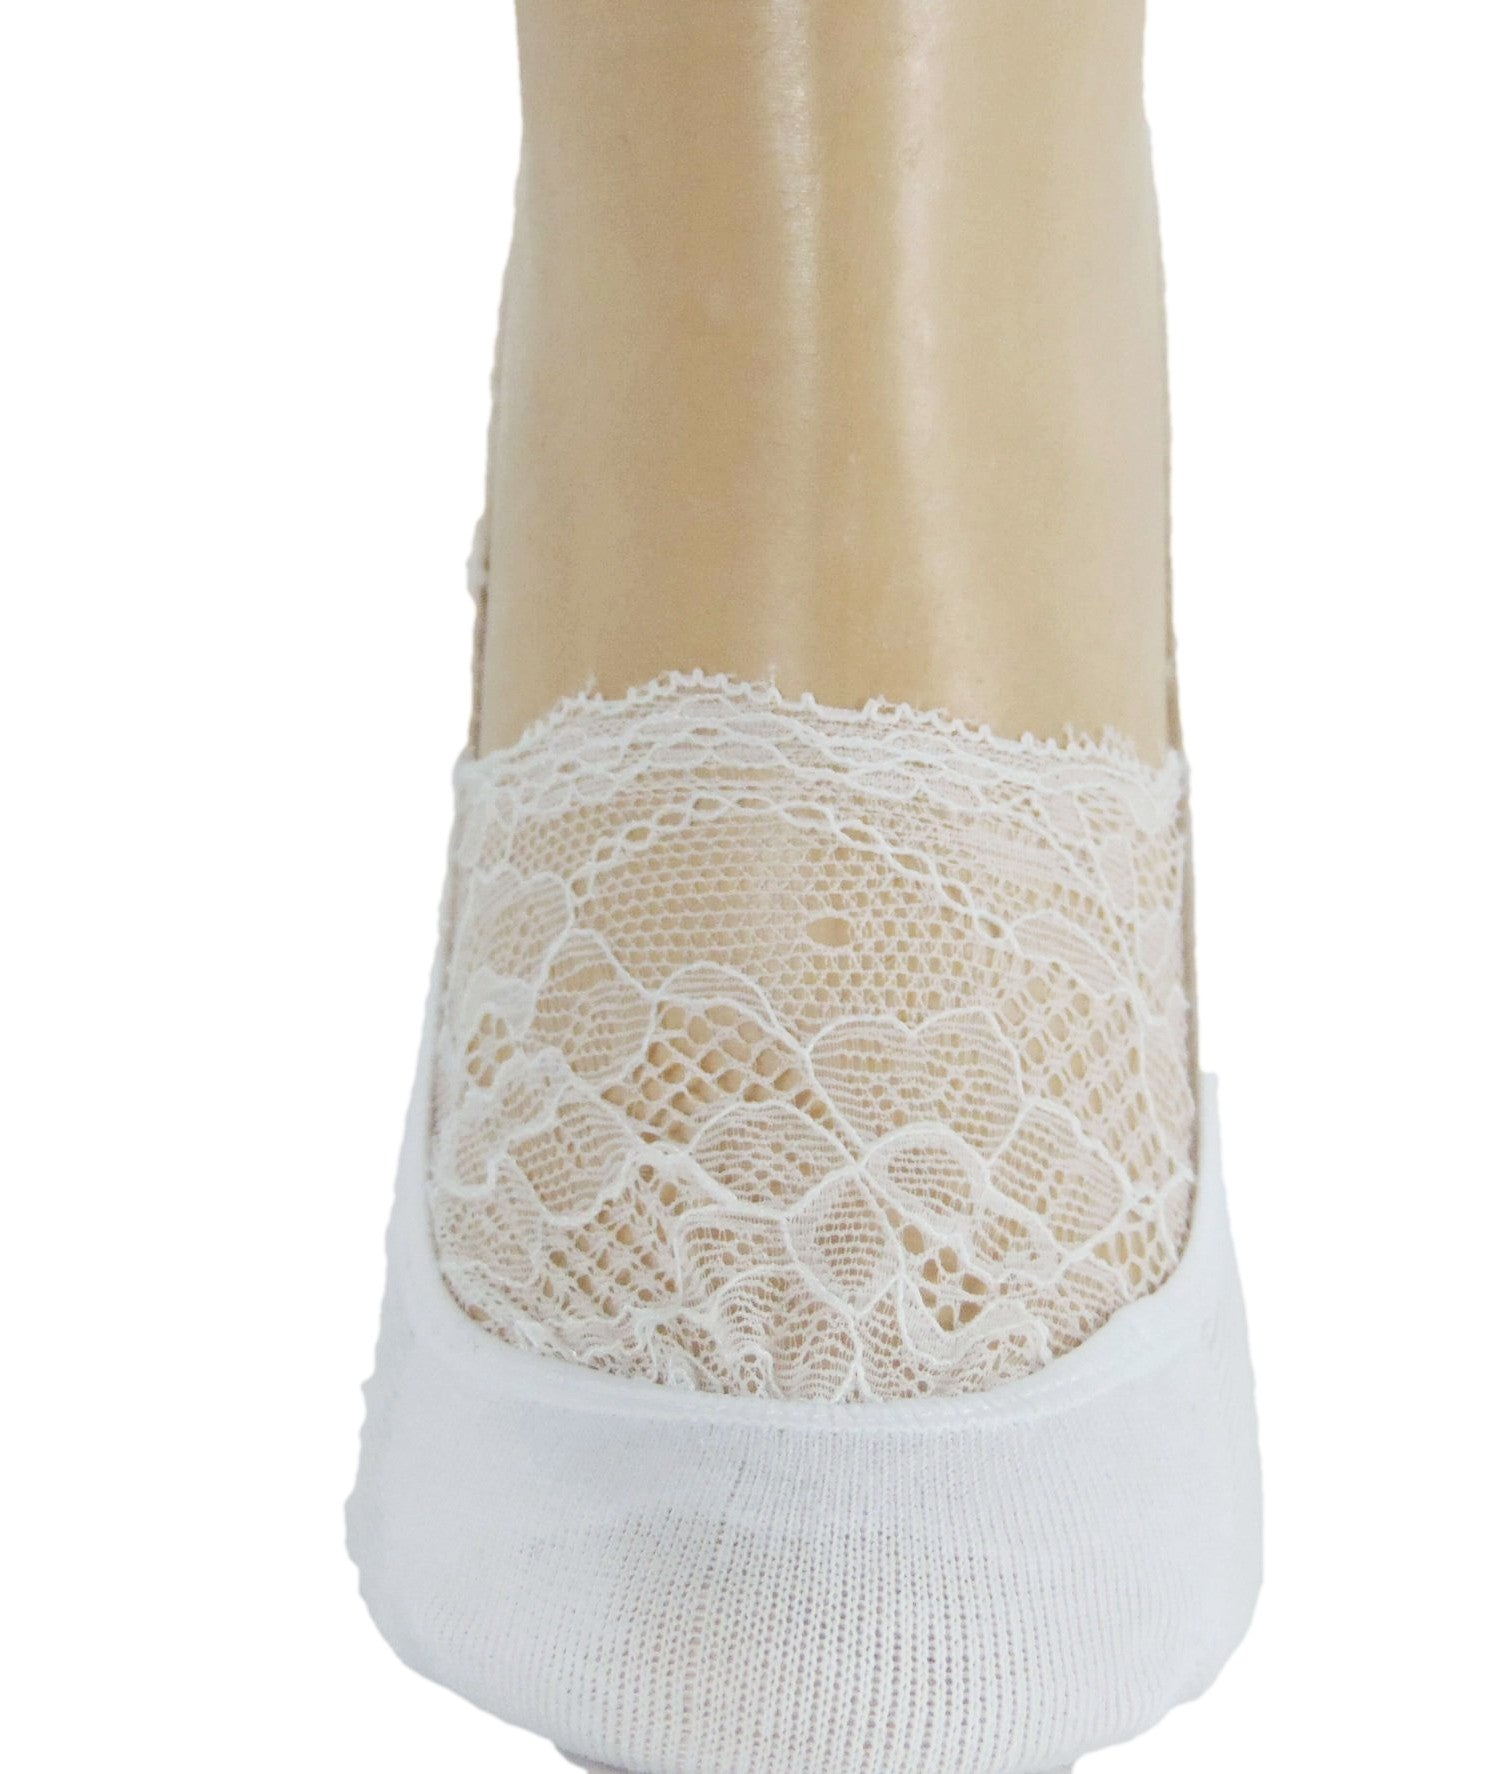 Classy White Ankle Sheer Socks - Global Trendz Fashion®